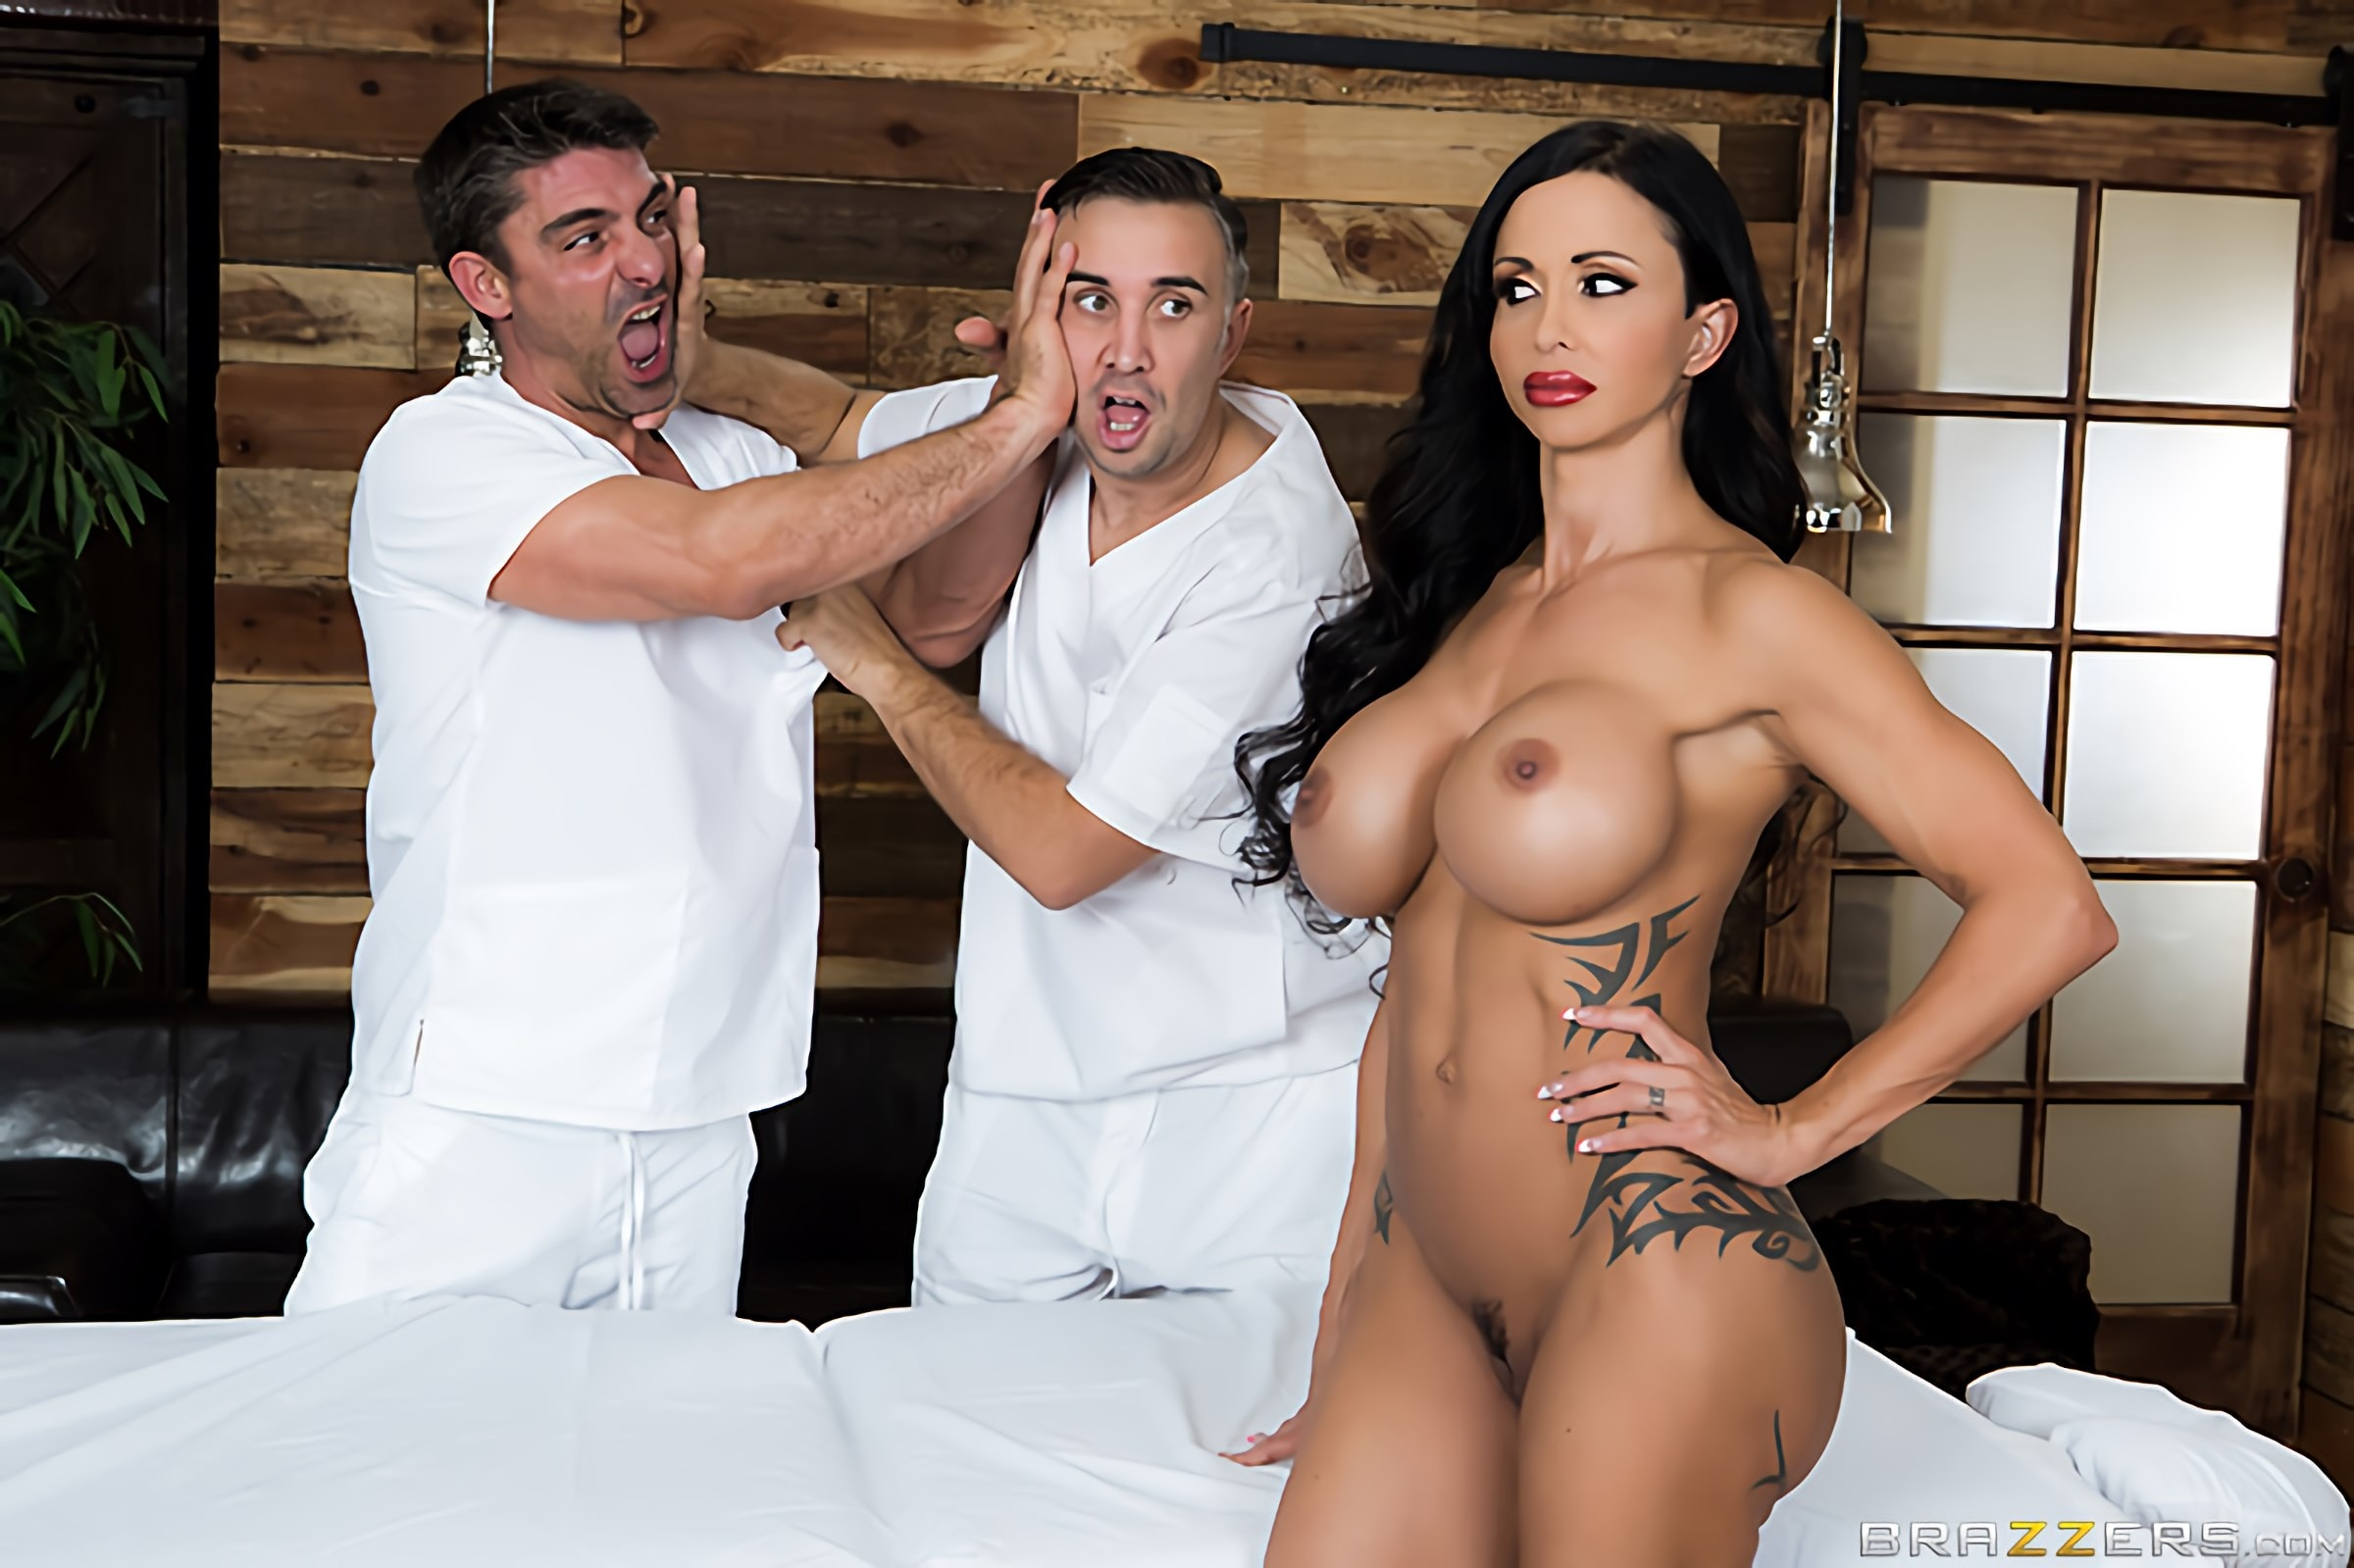 Brazzers 'My Two Fuck Boys' starring Jewels Jade (Photo 1)